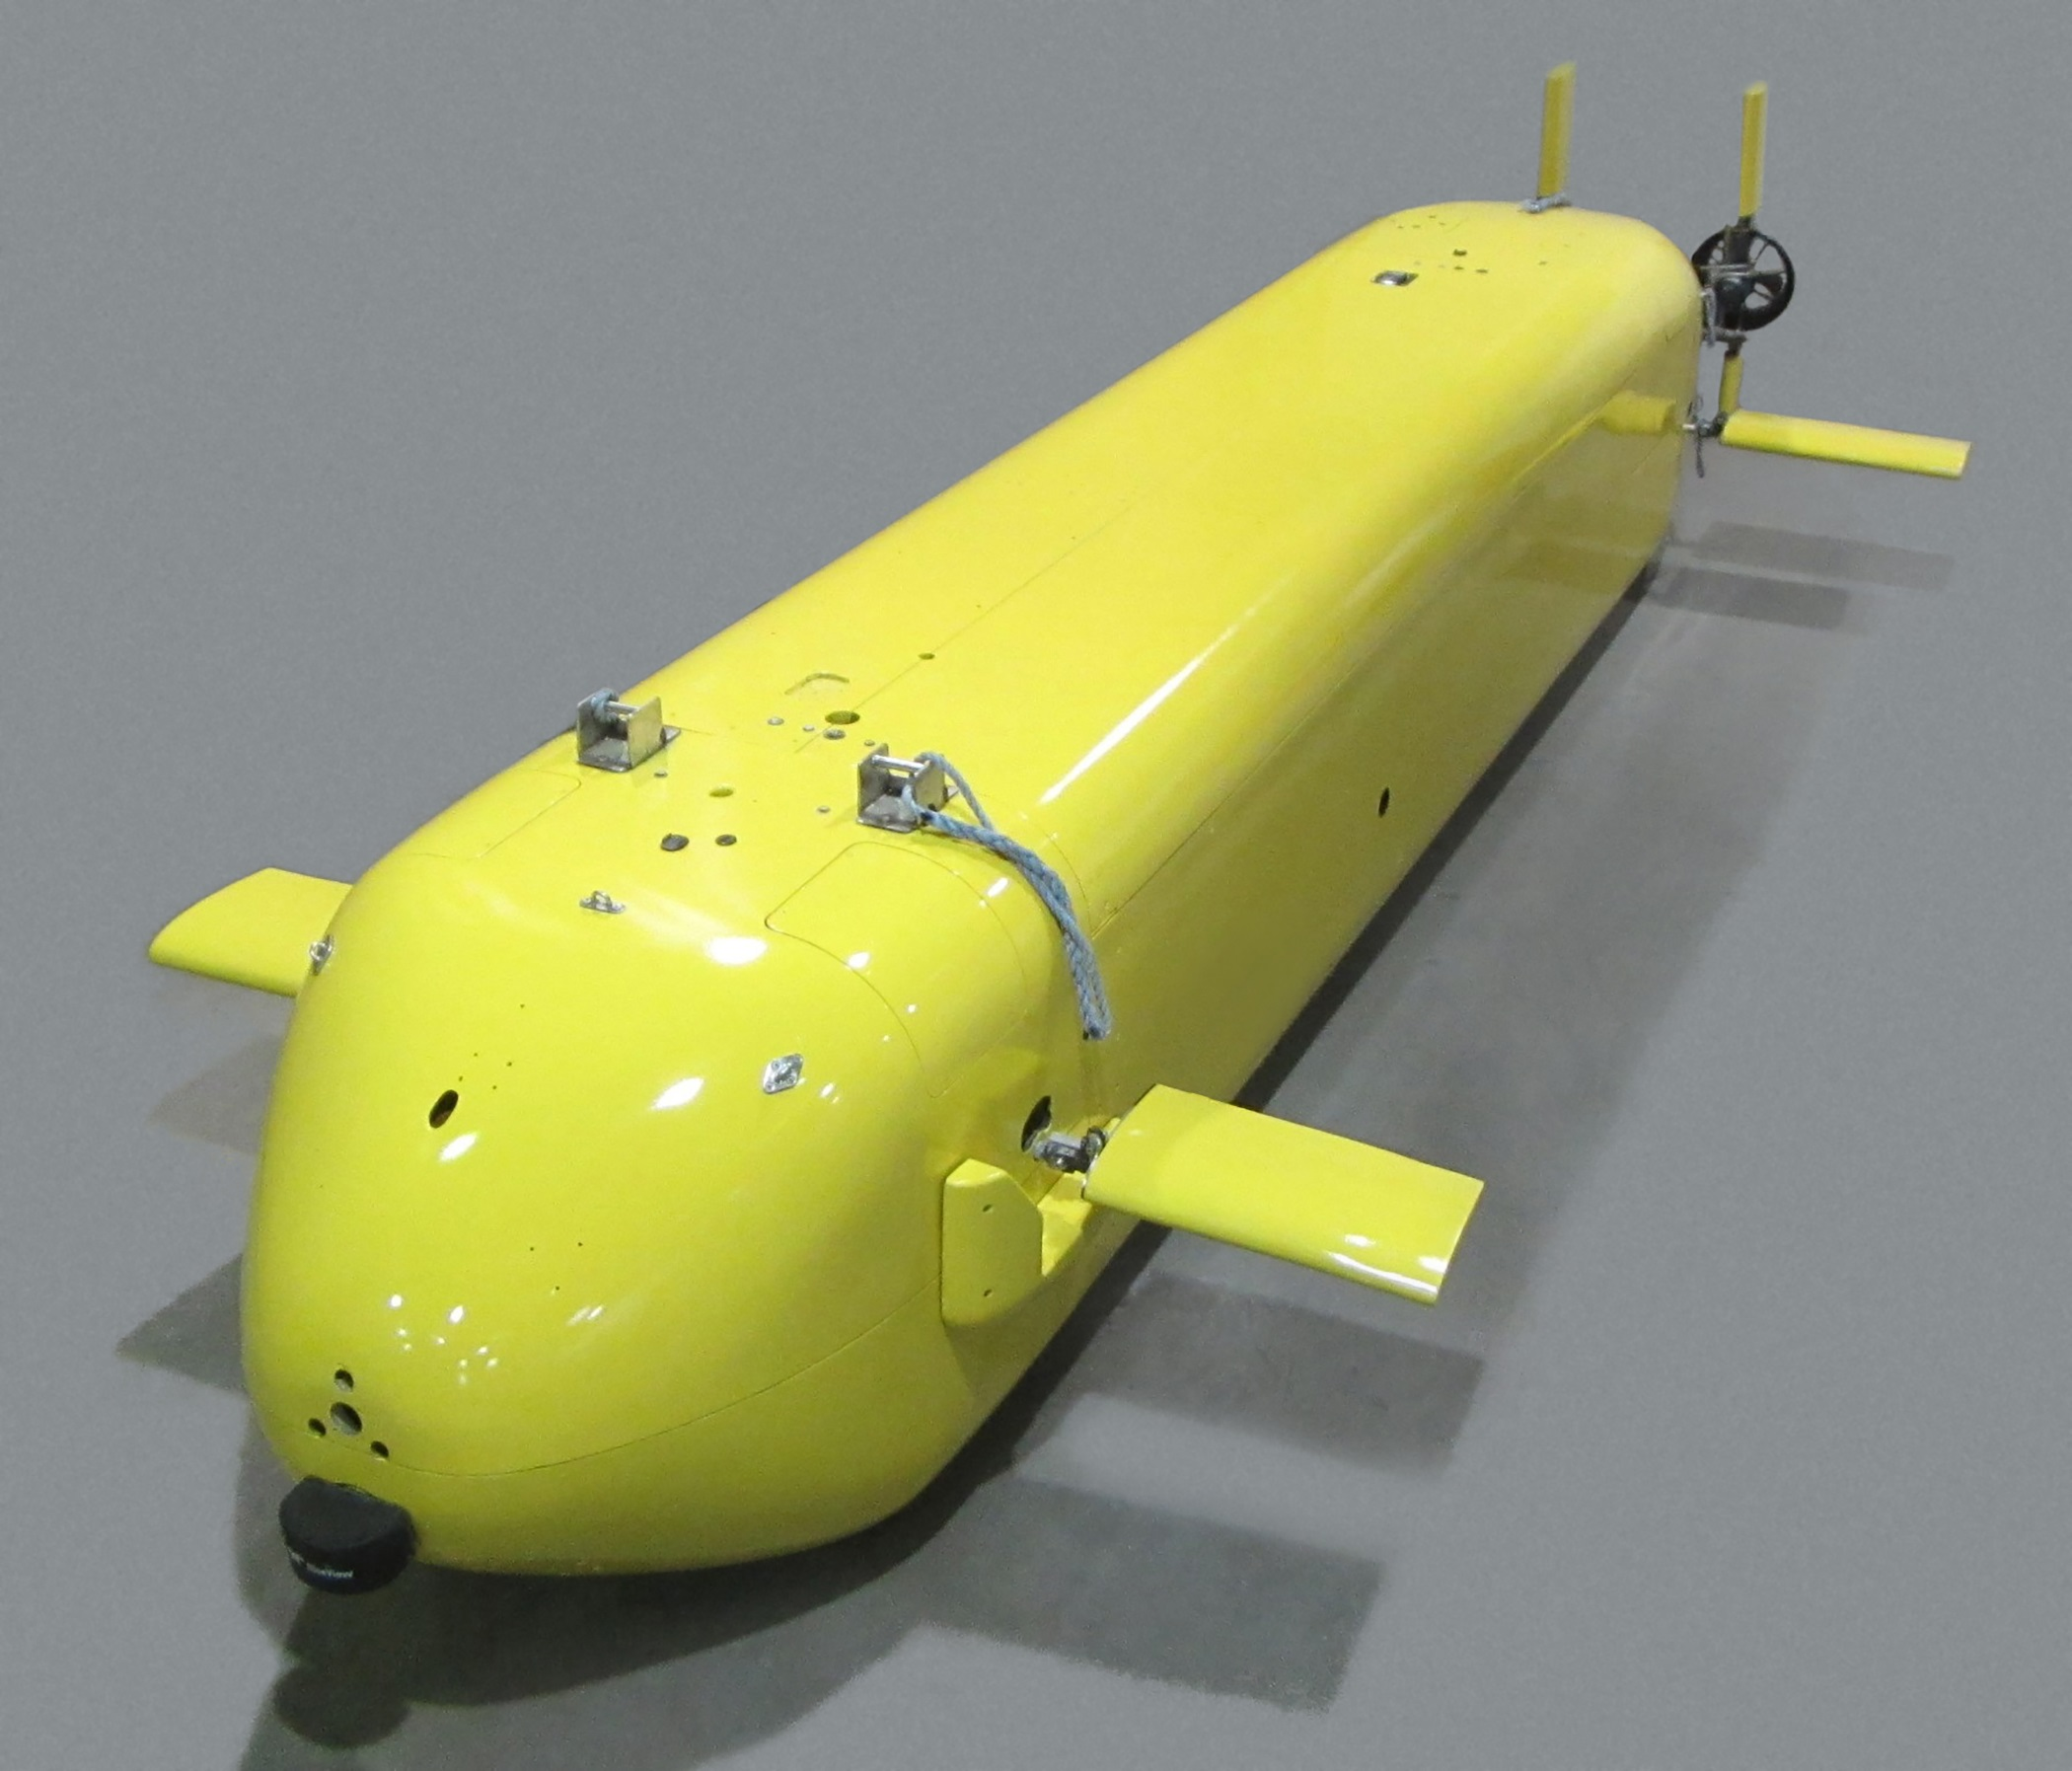 GM Hydrogen Fuel Cell Drone